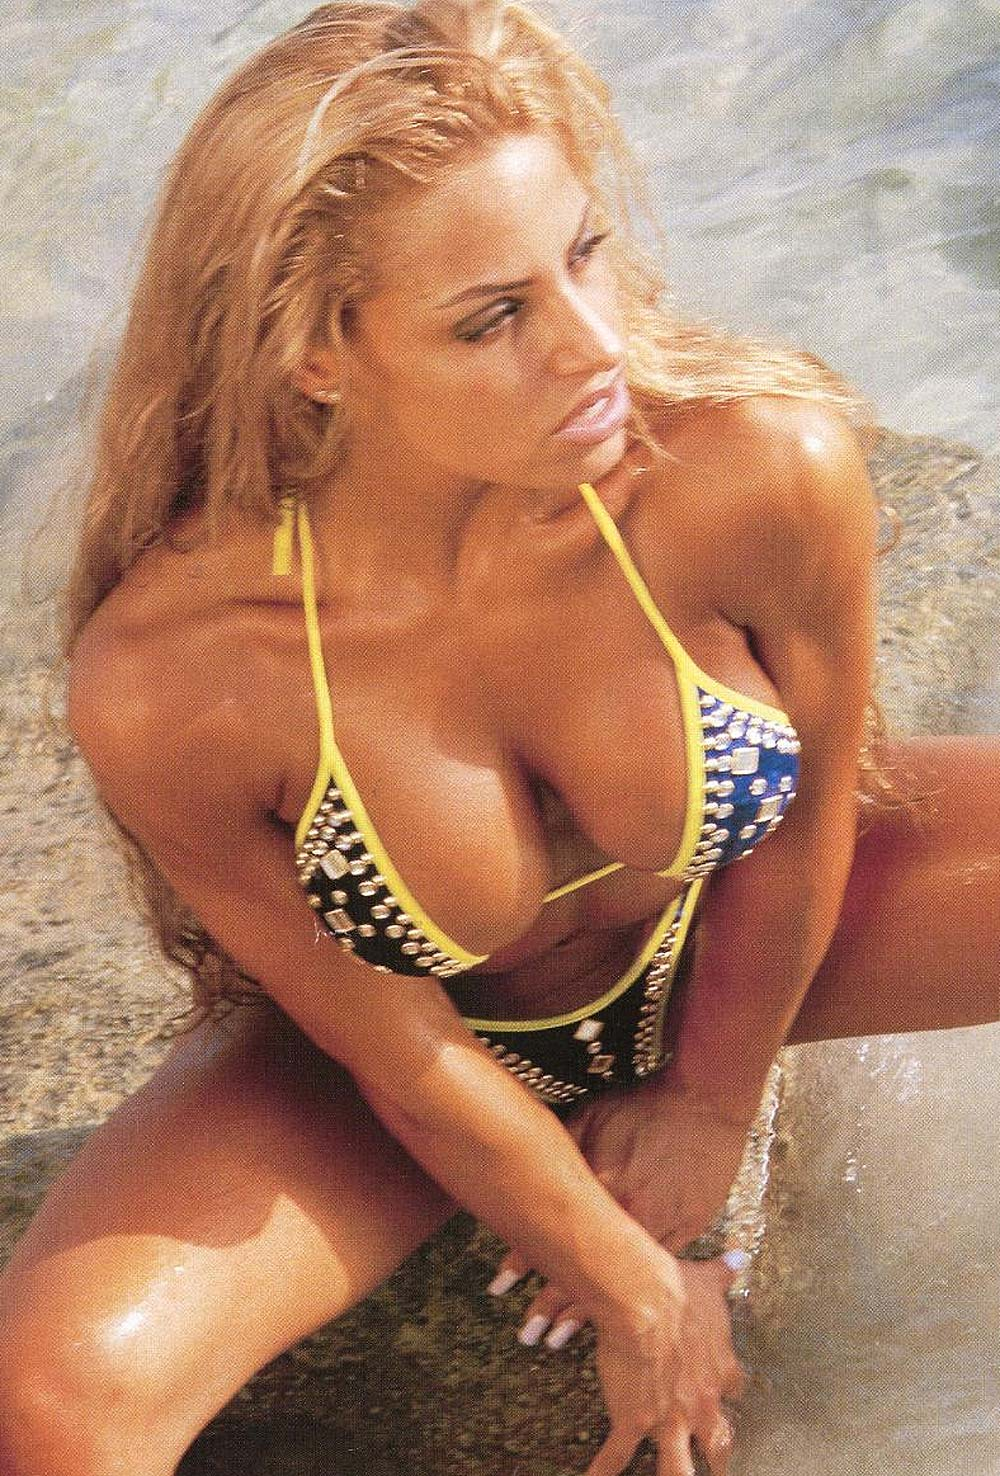 Porn Of Trish Stratus